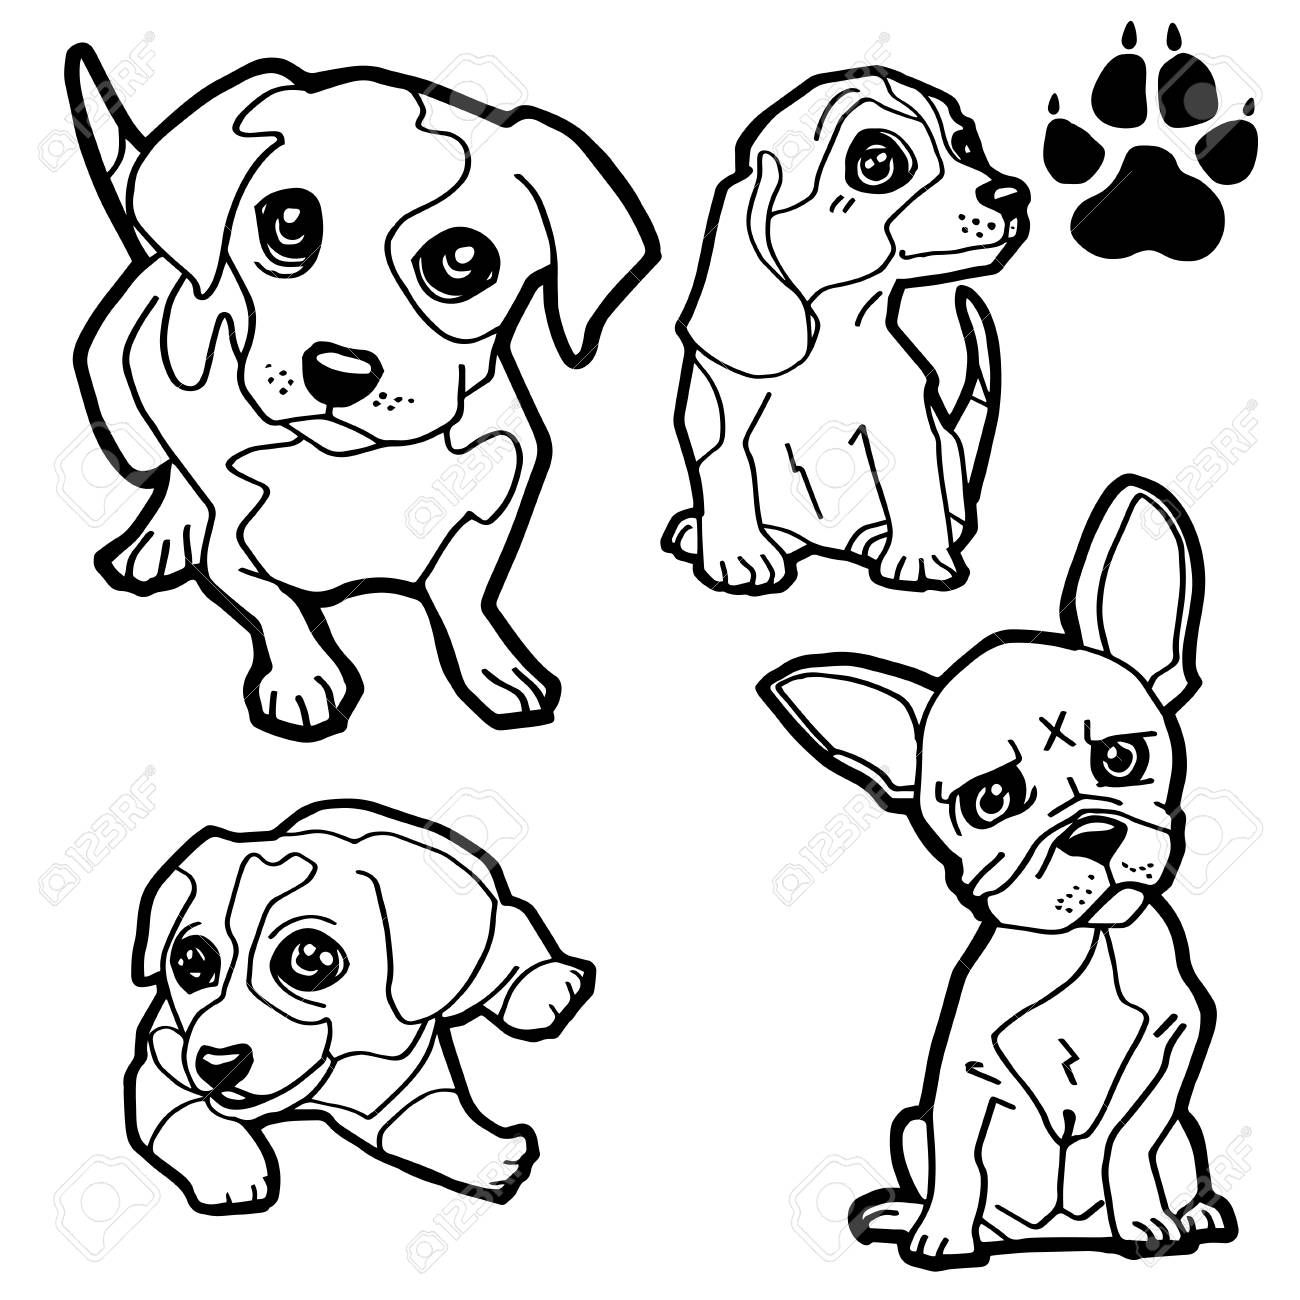 Dog Cartoon And Dog Paw Print Coloring Book On White Background Vector Ad Paw Print Dog Carto Coloring Books Printable Coloring Pages Coloring Pages